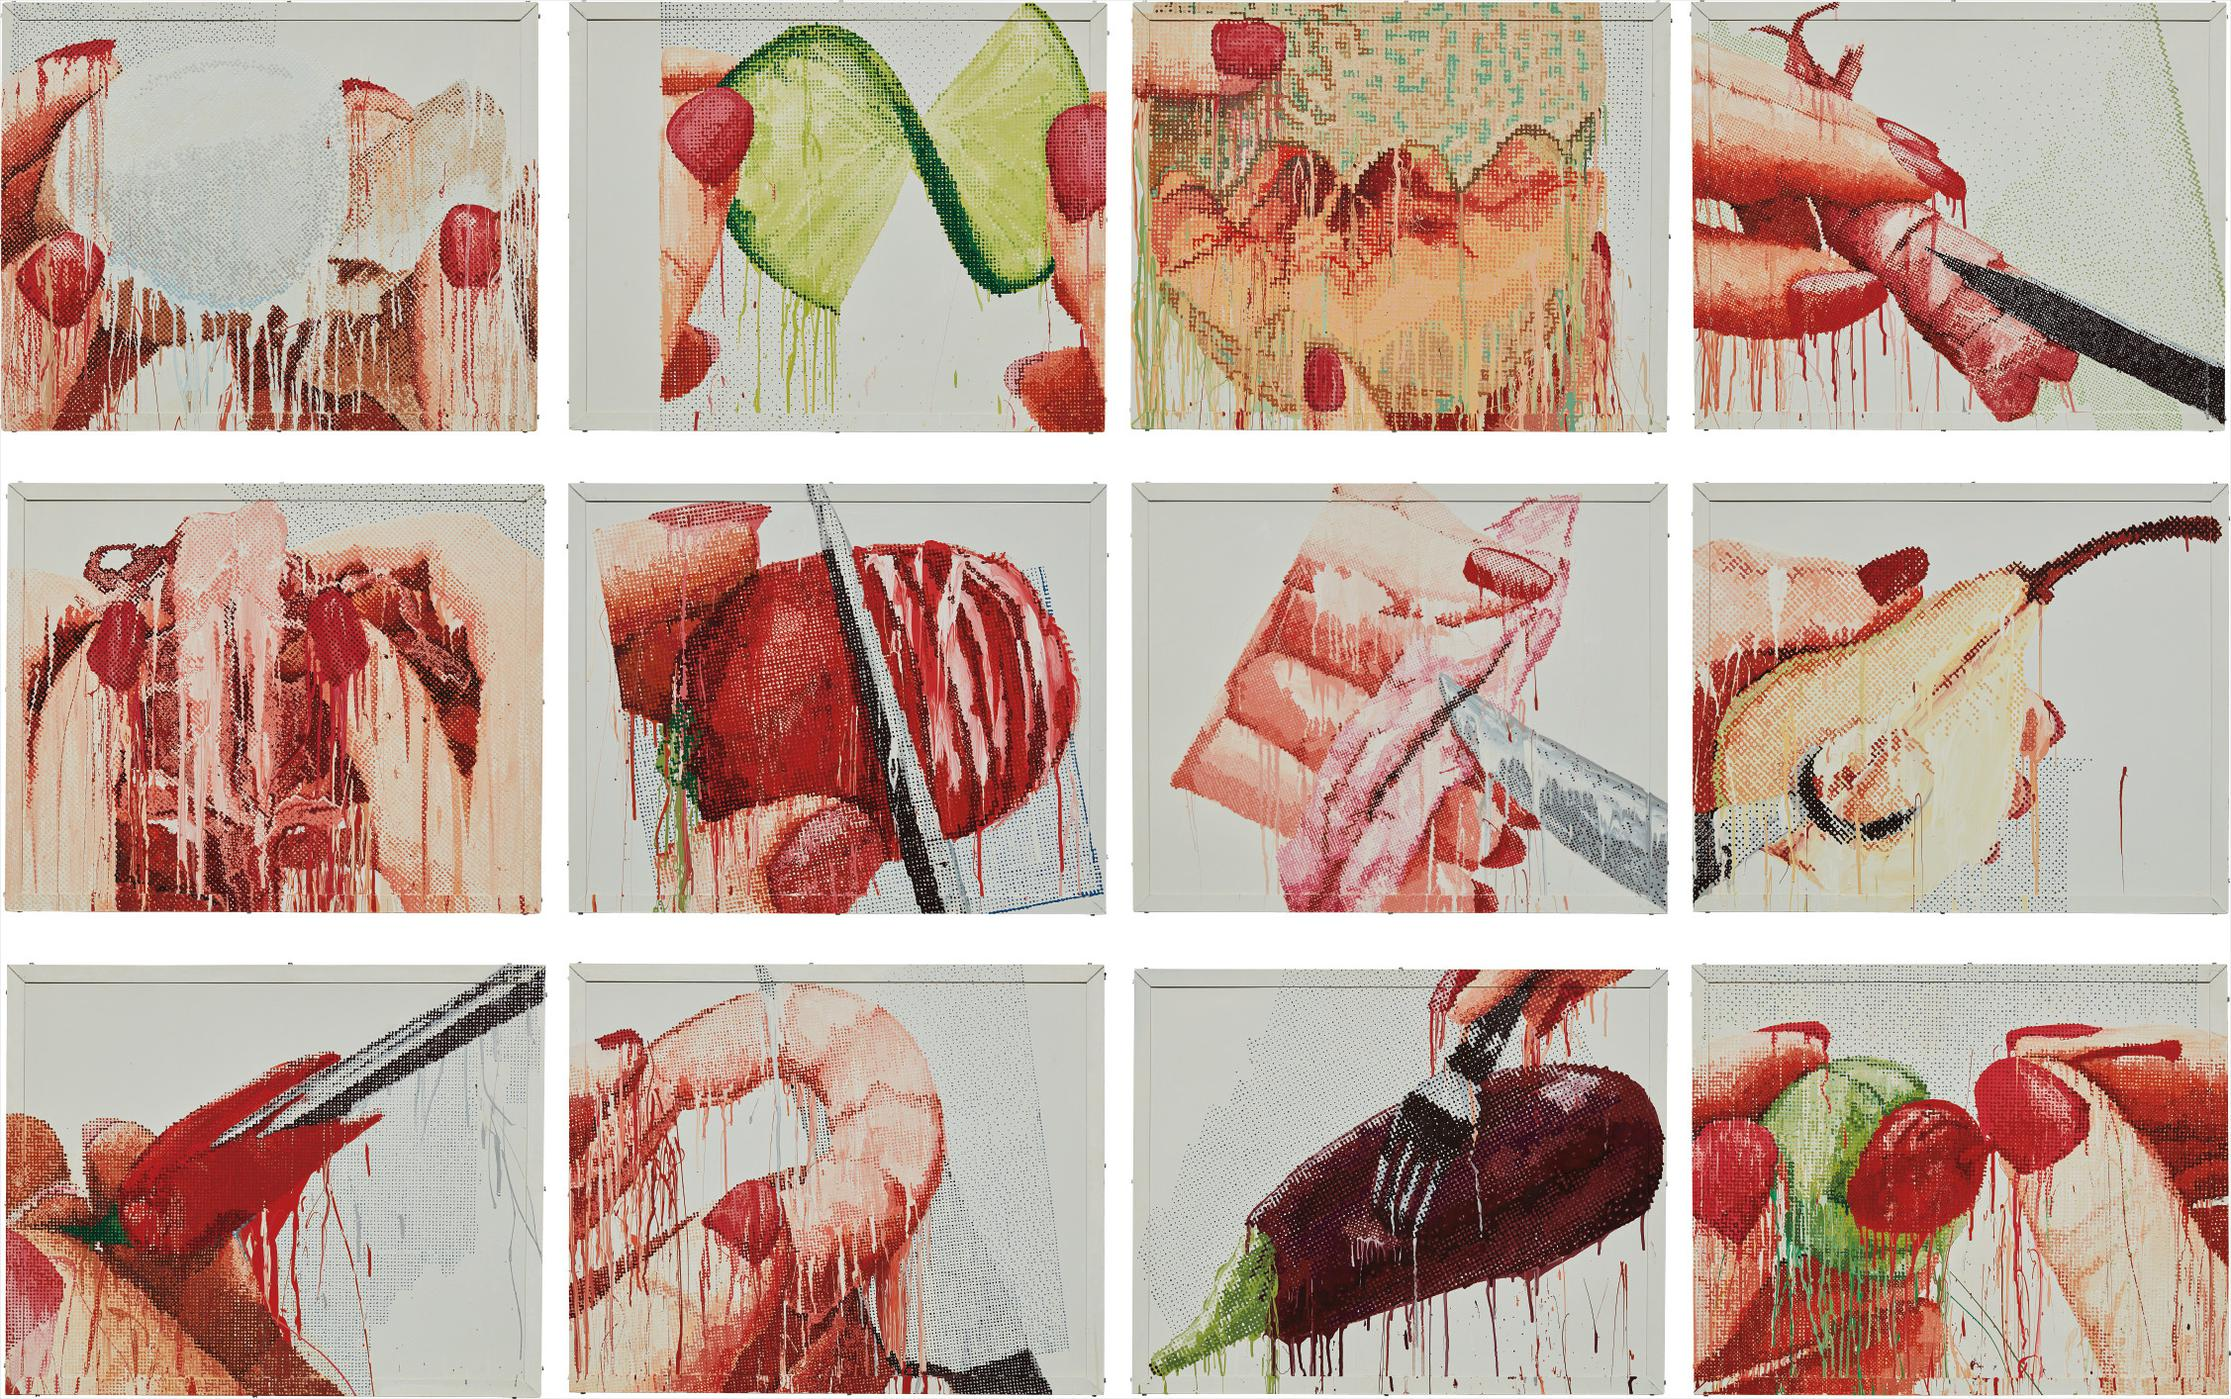 Marilyn Minter-12 works from 100 Food Porn-1990